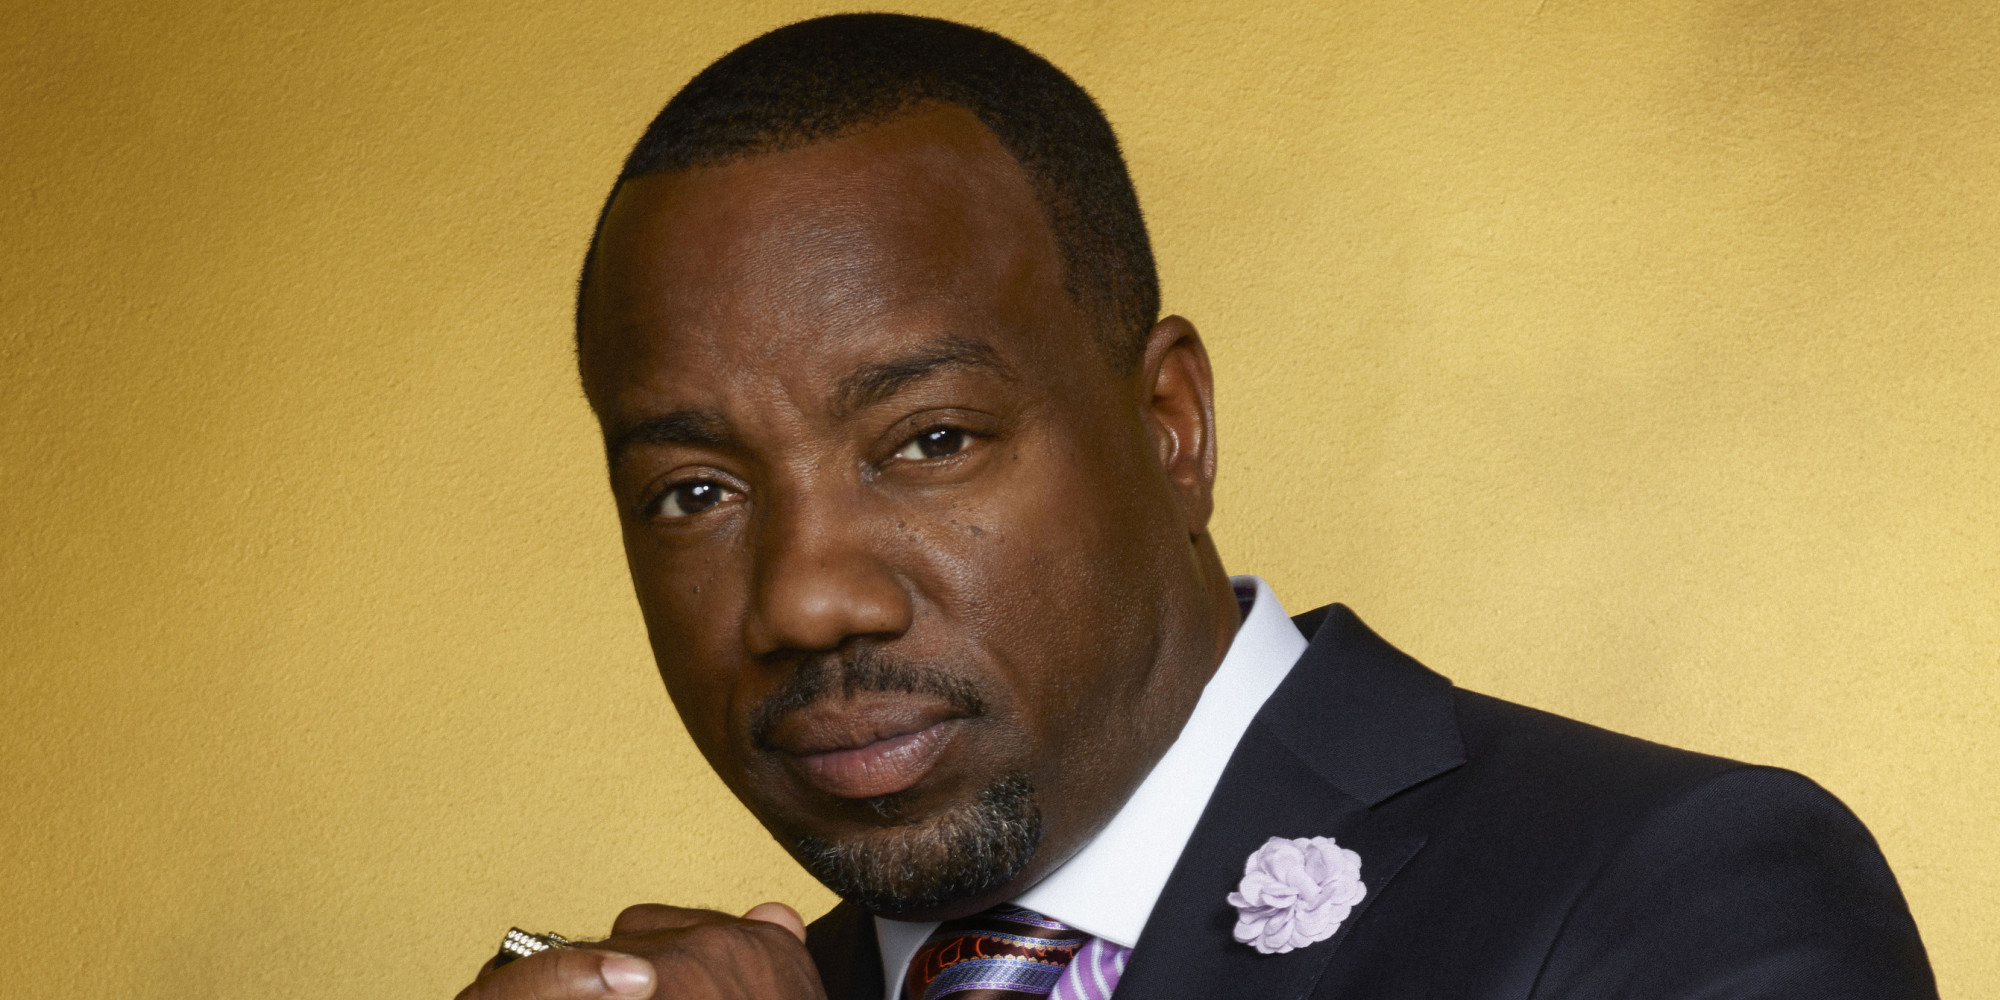 malik yoba drugsmalik yoba csi miami, malik yoba, malik yoba wife, malik yoba empire, malik yoba net worth, malik yoba biography, malik yoba gay, malik yoba fired from empire, malik yoba drugs, malik yoba instagram, malik yoba jussie smollett, malik yoba imdb, malik yoba singing, malik yoba new york undercover, malik yoba twitter, malik yoba movies and tv shows, malik yoba restaurant, malik yoba drug use, malik yoba on crack, malik yoba muslim